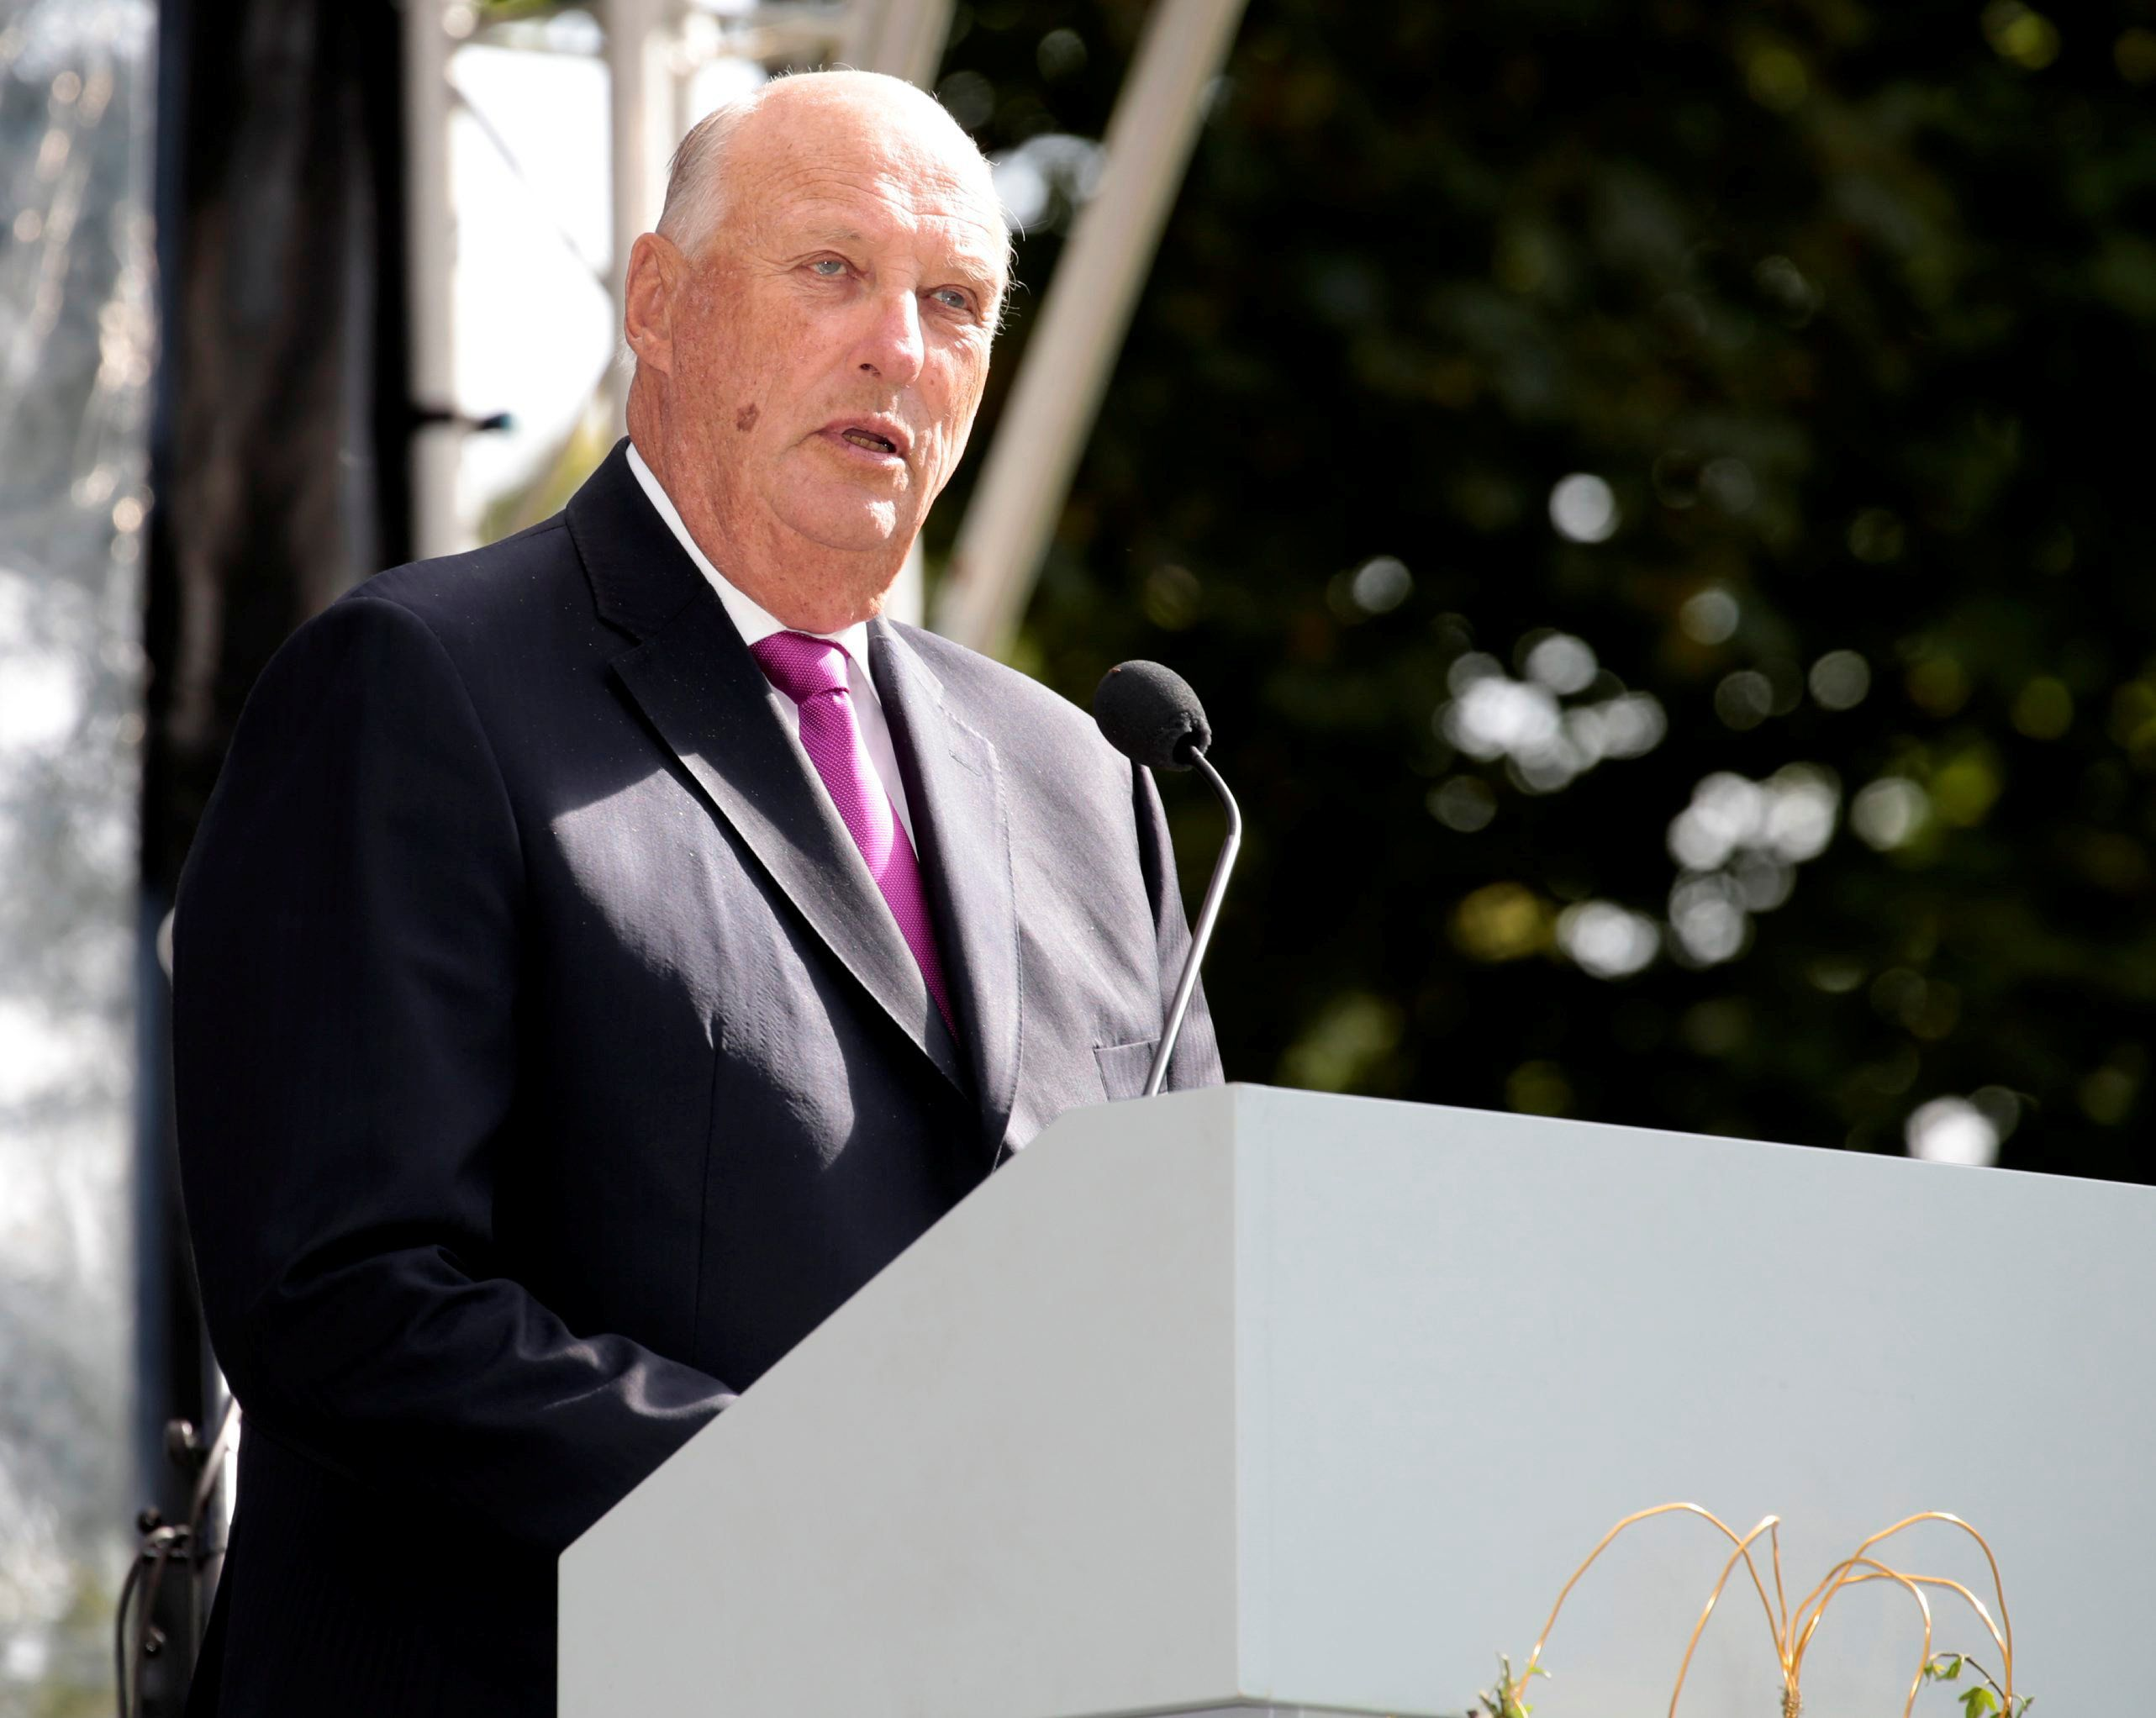 Norway's King Harald speaks at a garden party in Palace Park, Oslo, Norway, September 1, 2016. Picture taken September 1, 2016. NTB Scanpix/Lise Aaserud/via REUTERSATTENTION EDITORS - THIS IMAGE WAS PROVIDED BY A THIRD PARTY. FOR EDITORIAL USE ONLY. NOT FOR SALE FOR MARKETING OR ADVERTISING CAMPAIGNS. THIS PICTURE IS DISTRIBUTED EXACTLY AS RECEIVED BY REUTERS, AS A SERVICE TO CLIENTS. NORWAY OUT. NO COMMERCIAL OR EDITORIAL SALES IN NORWAY. NO COMMERCIAL SALES.